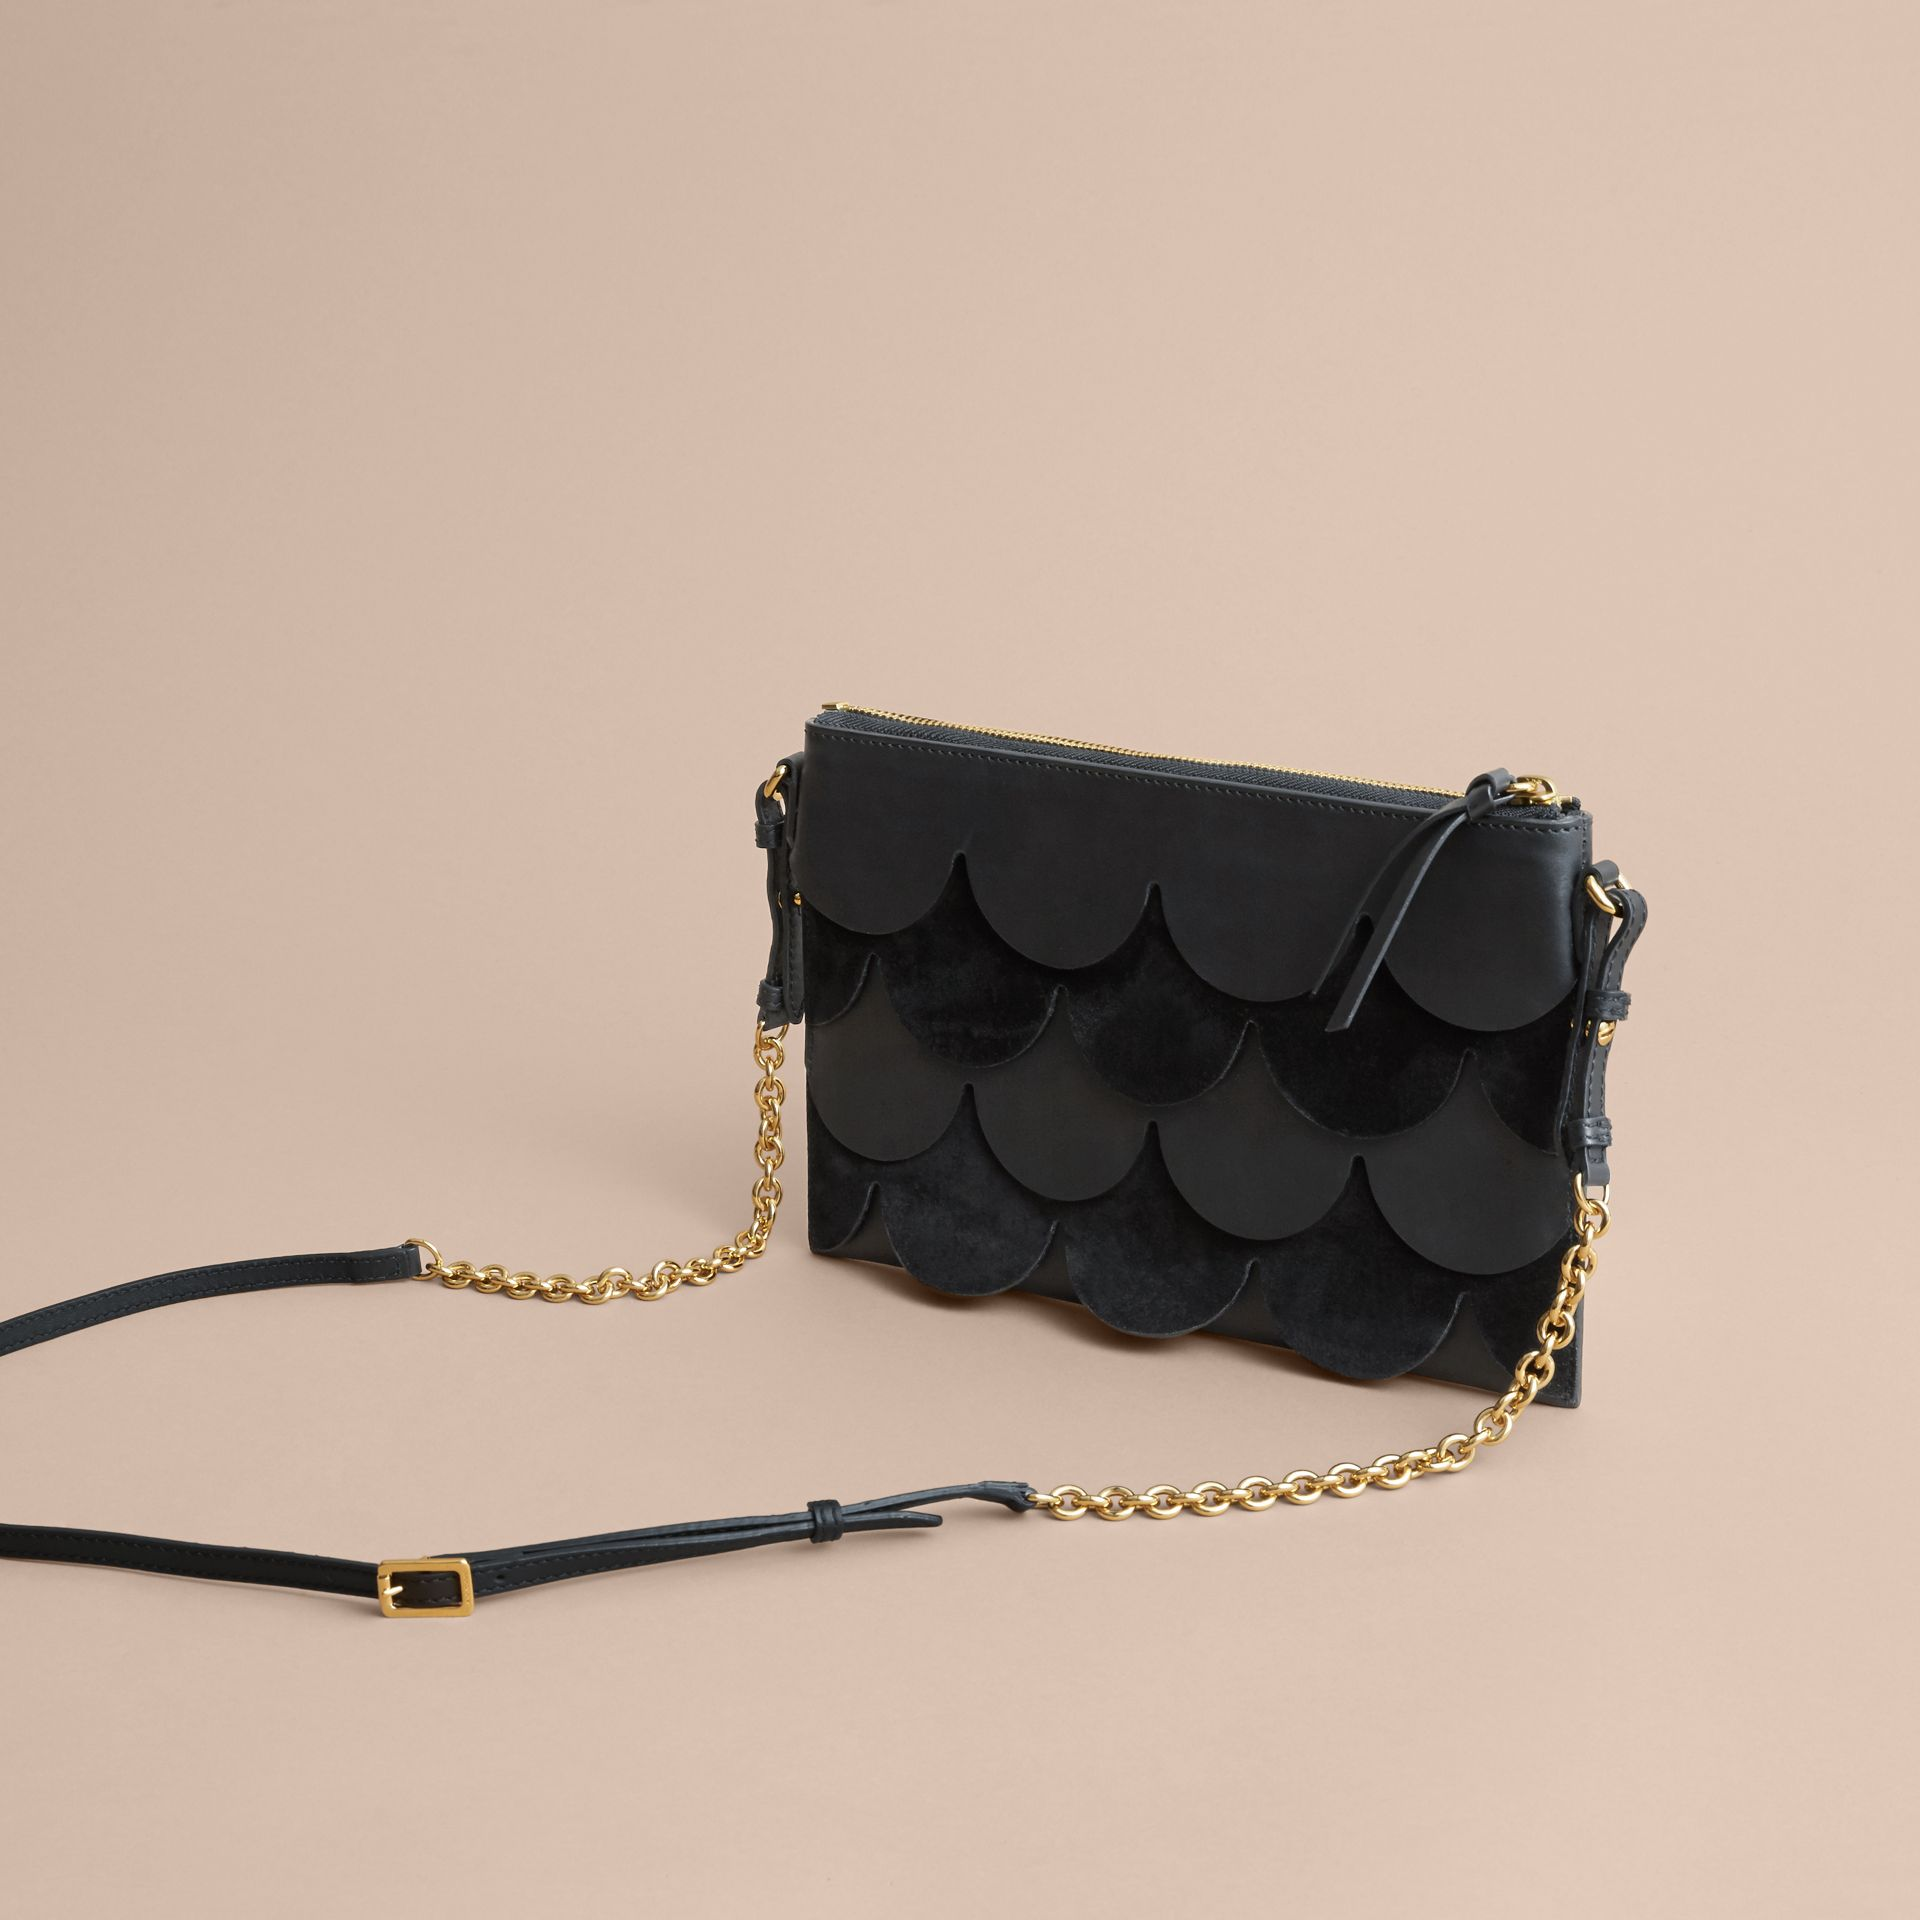 Two-tone Scalloped Leather and Suede Clutch Bag in Black - Women | Burberry - gallery image 5